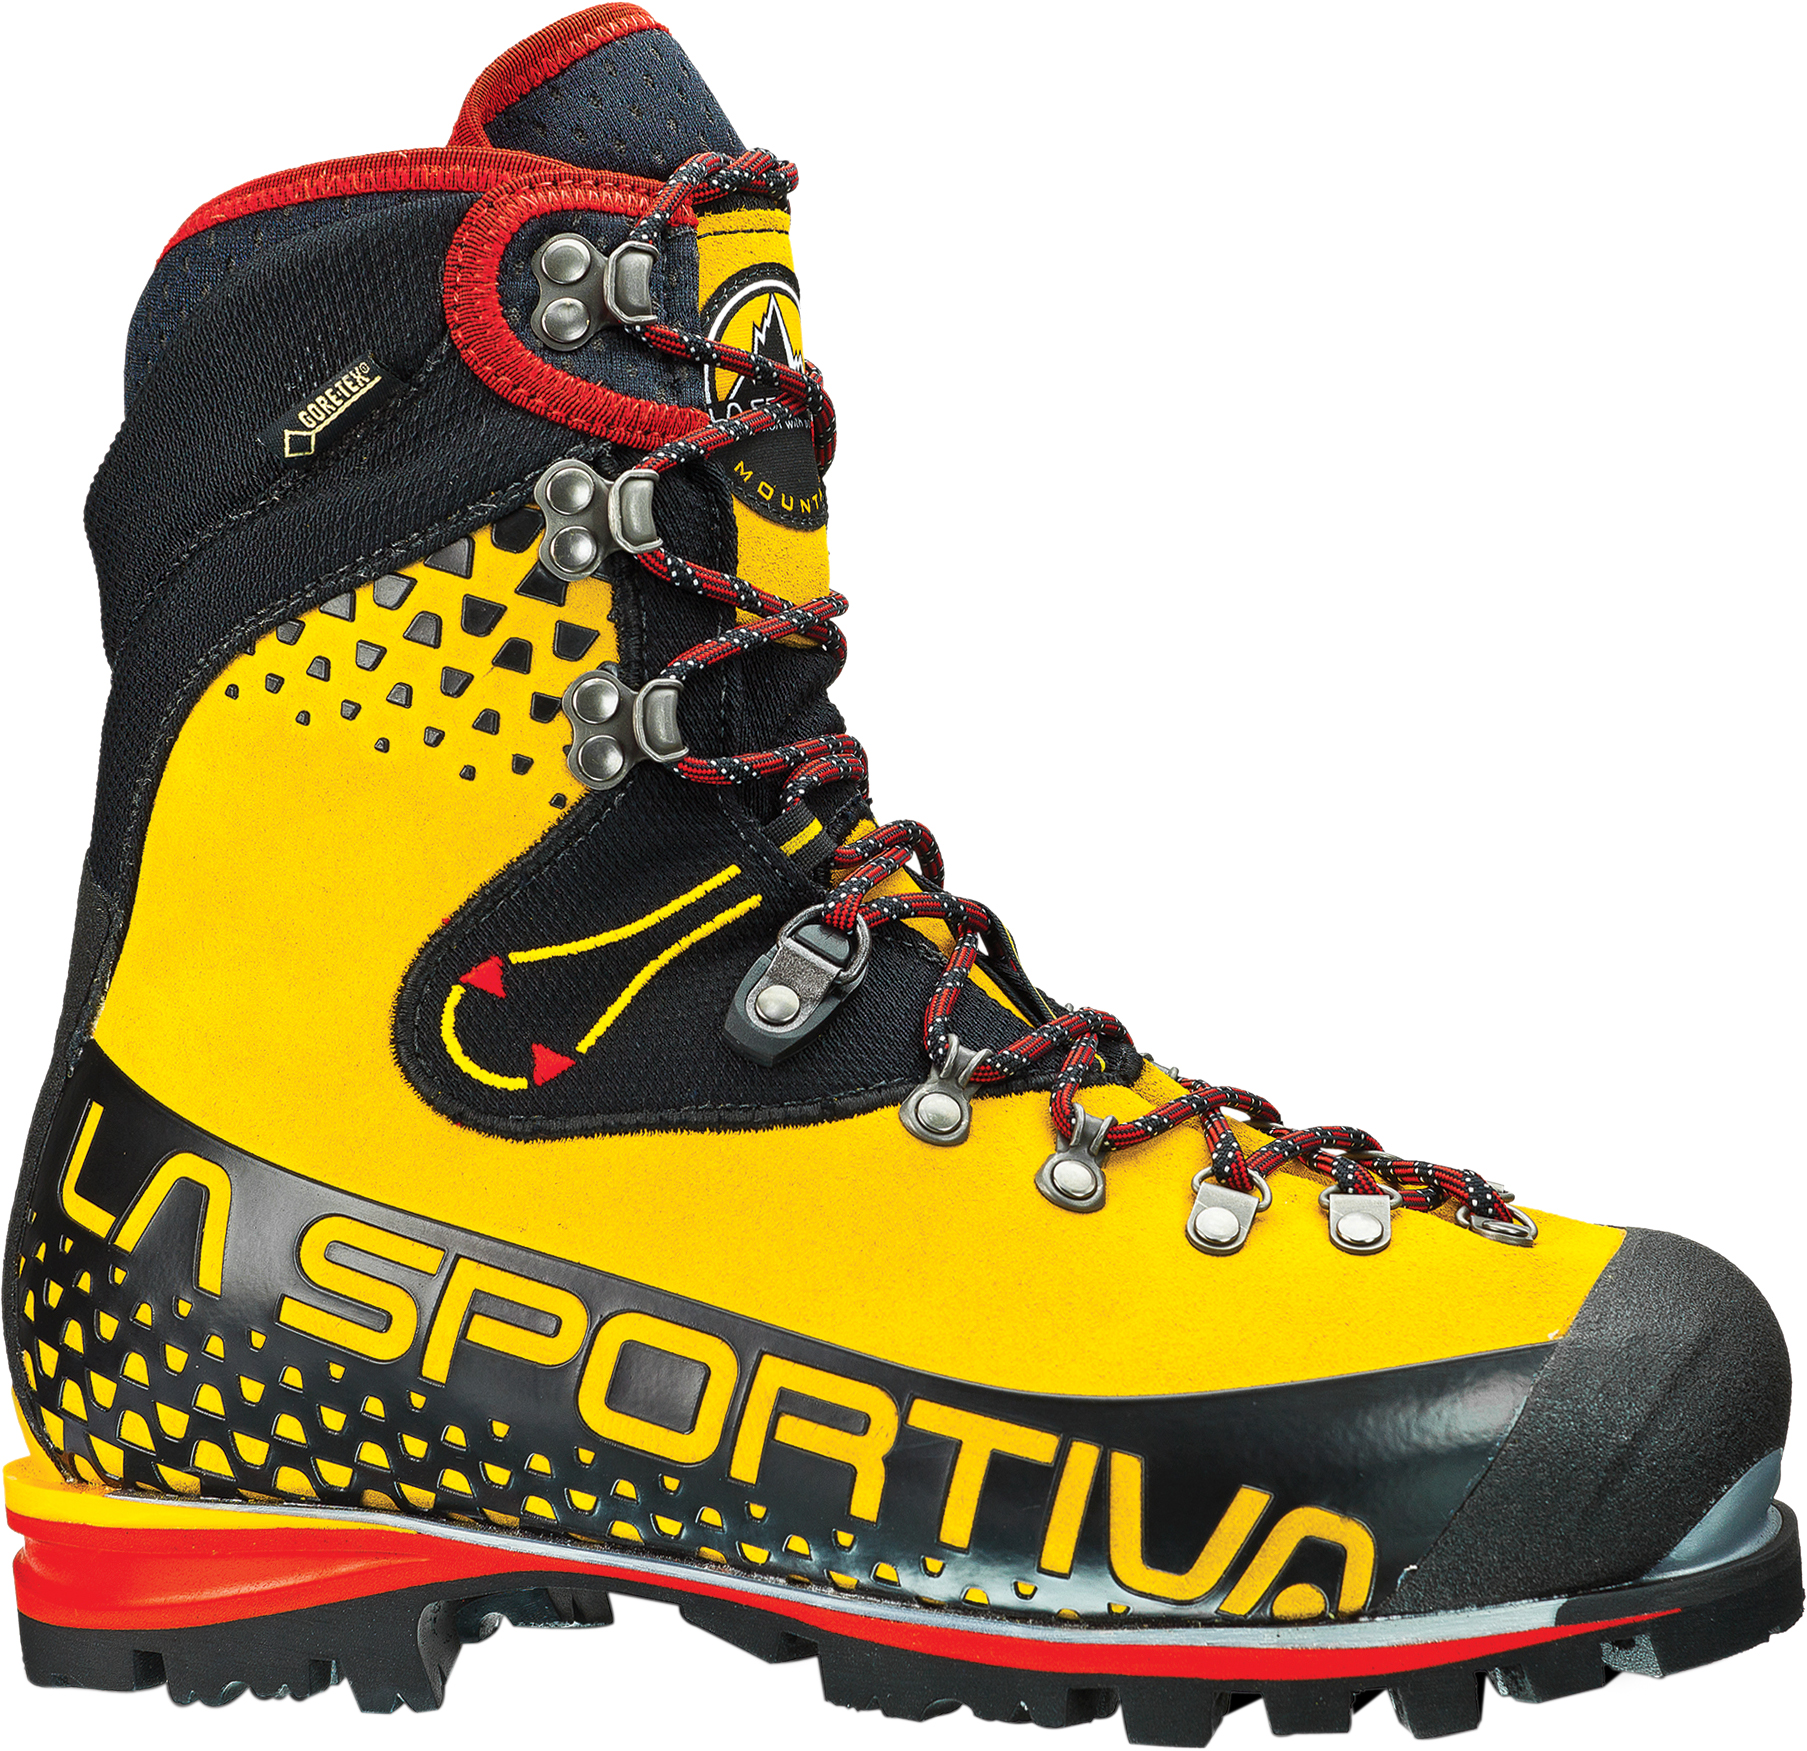 850b1e9a380 Mountaineering boots | MEC